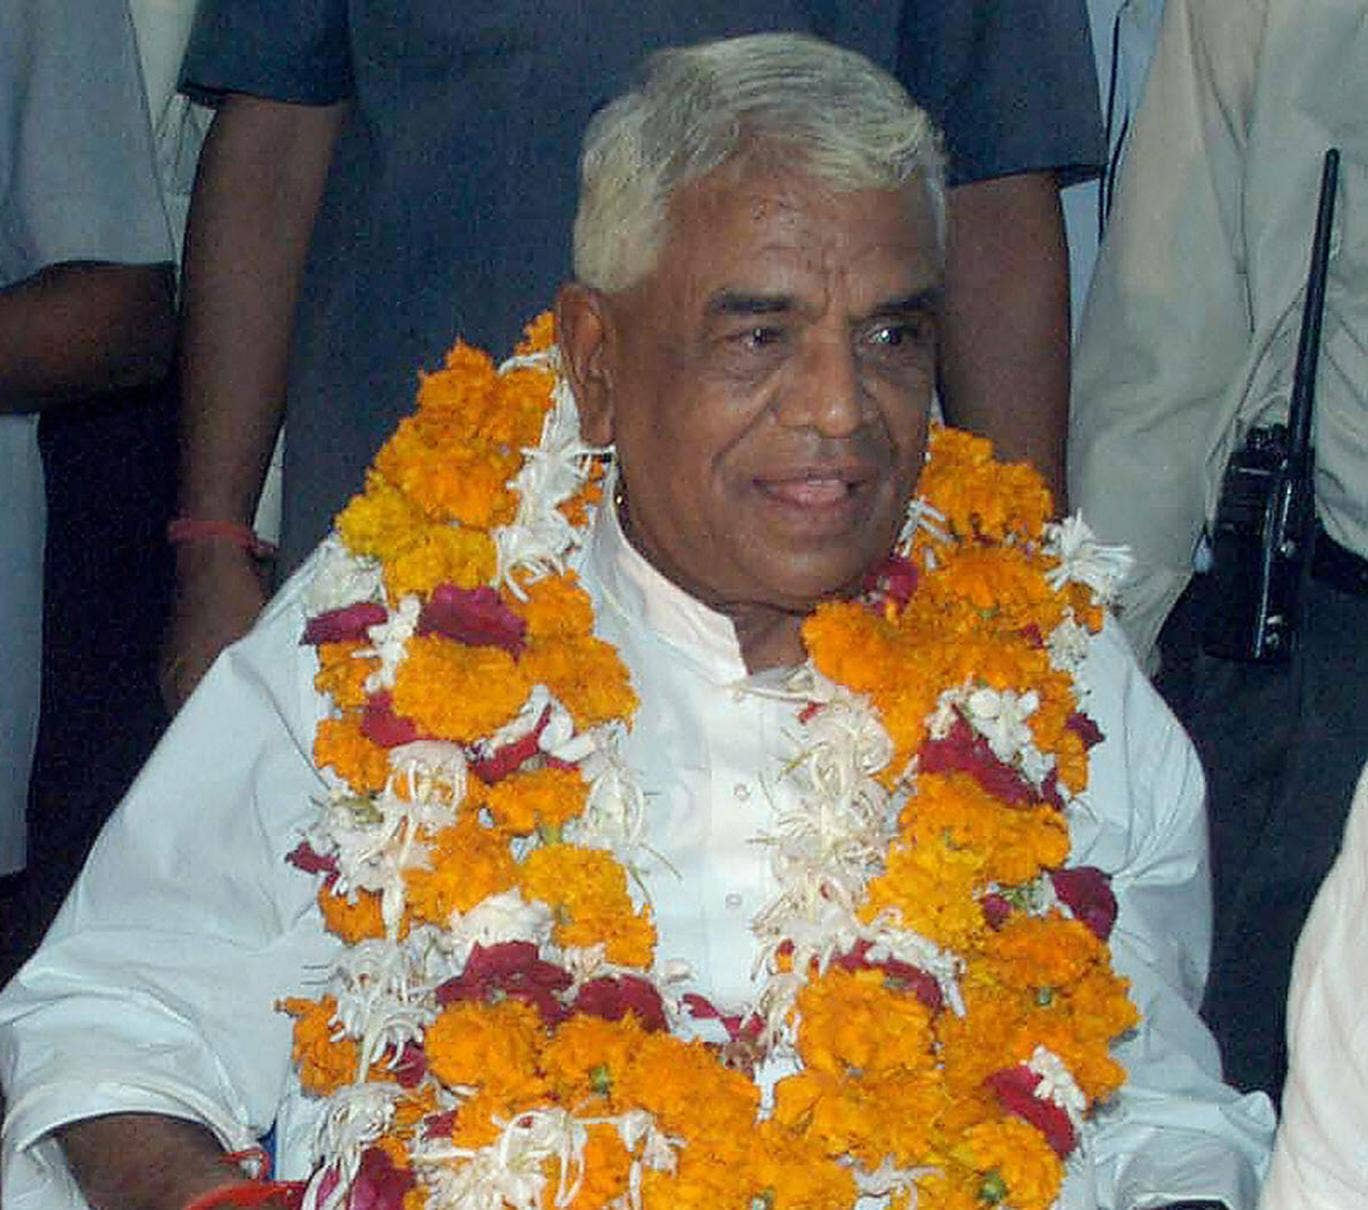 Babulal Gaur pictured at a Bharatiya Janata Party function in Bhopal on 23 August, 2004